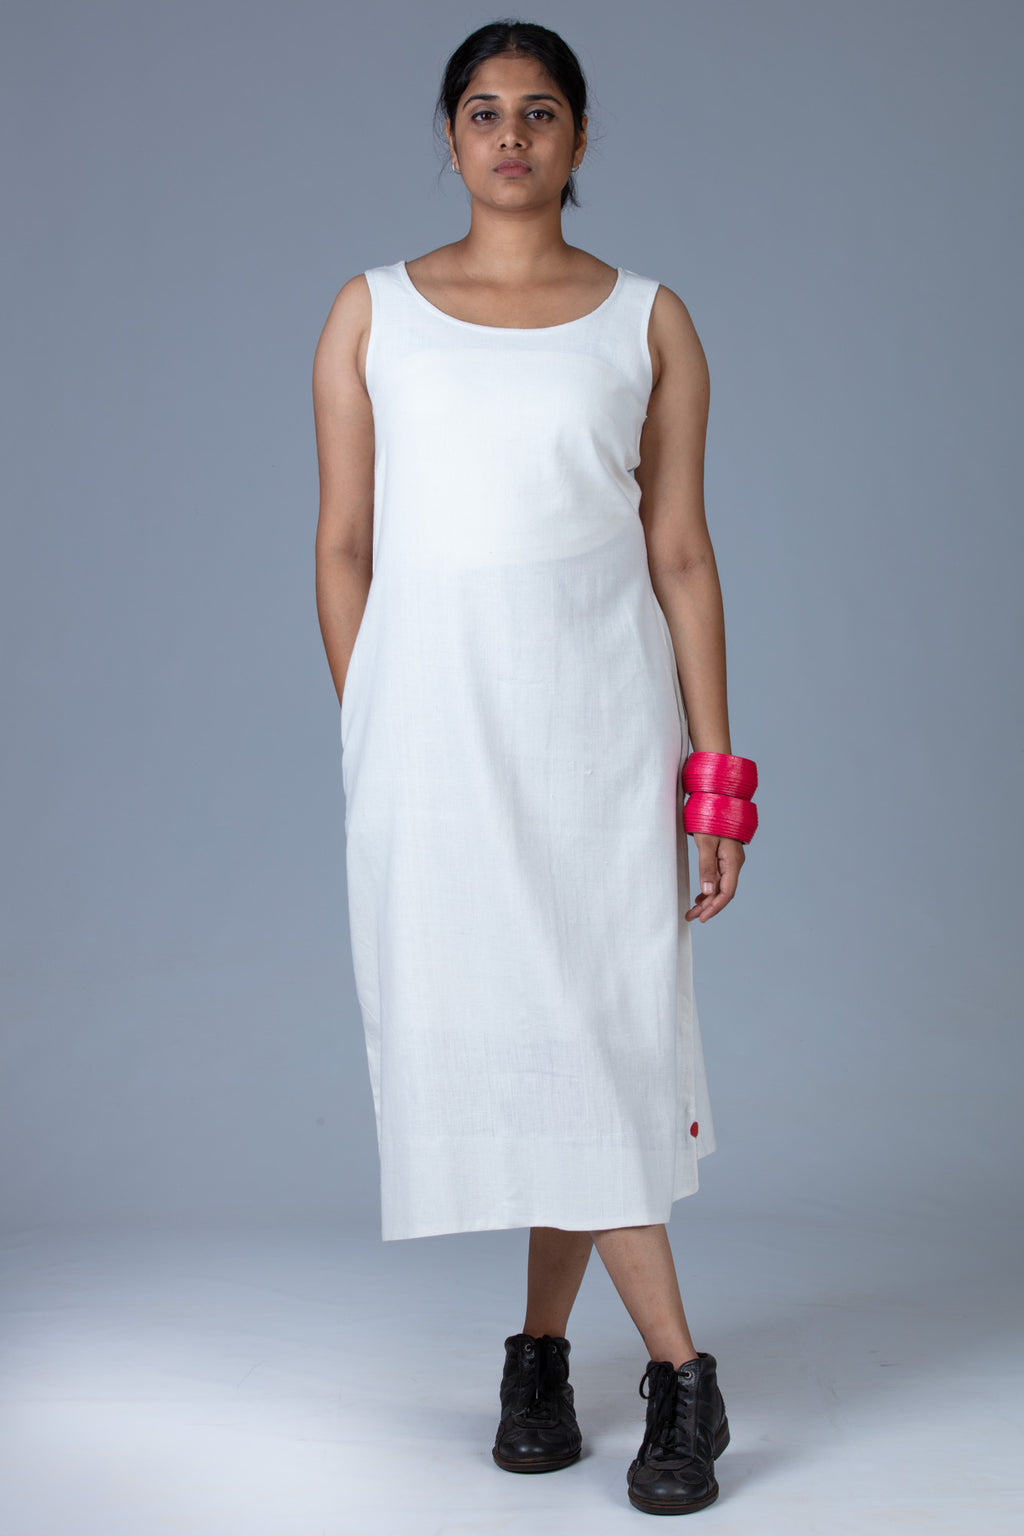 White Khadi Dress - NIKITA - Upasana Design Studio